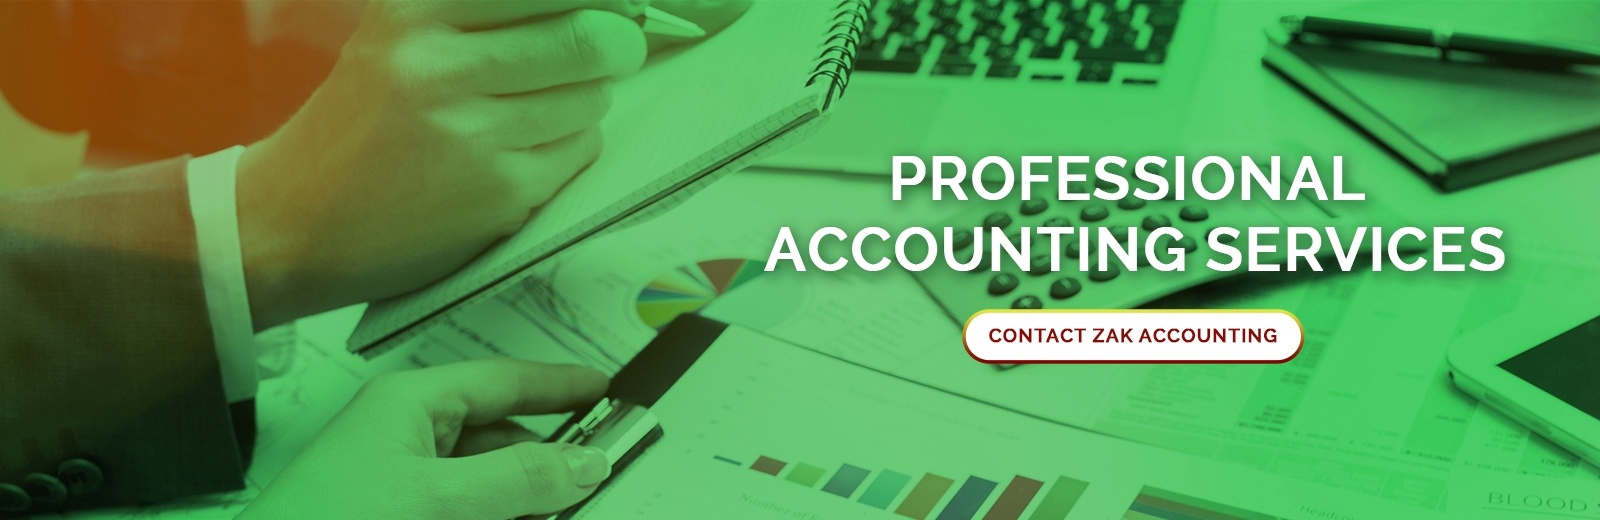 Professional Accounting Services Ottawa ON